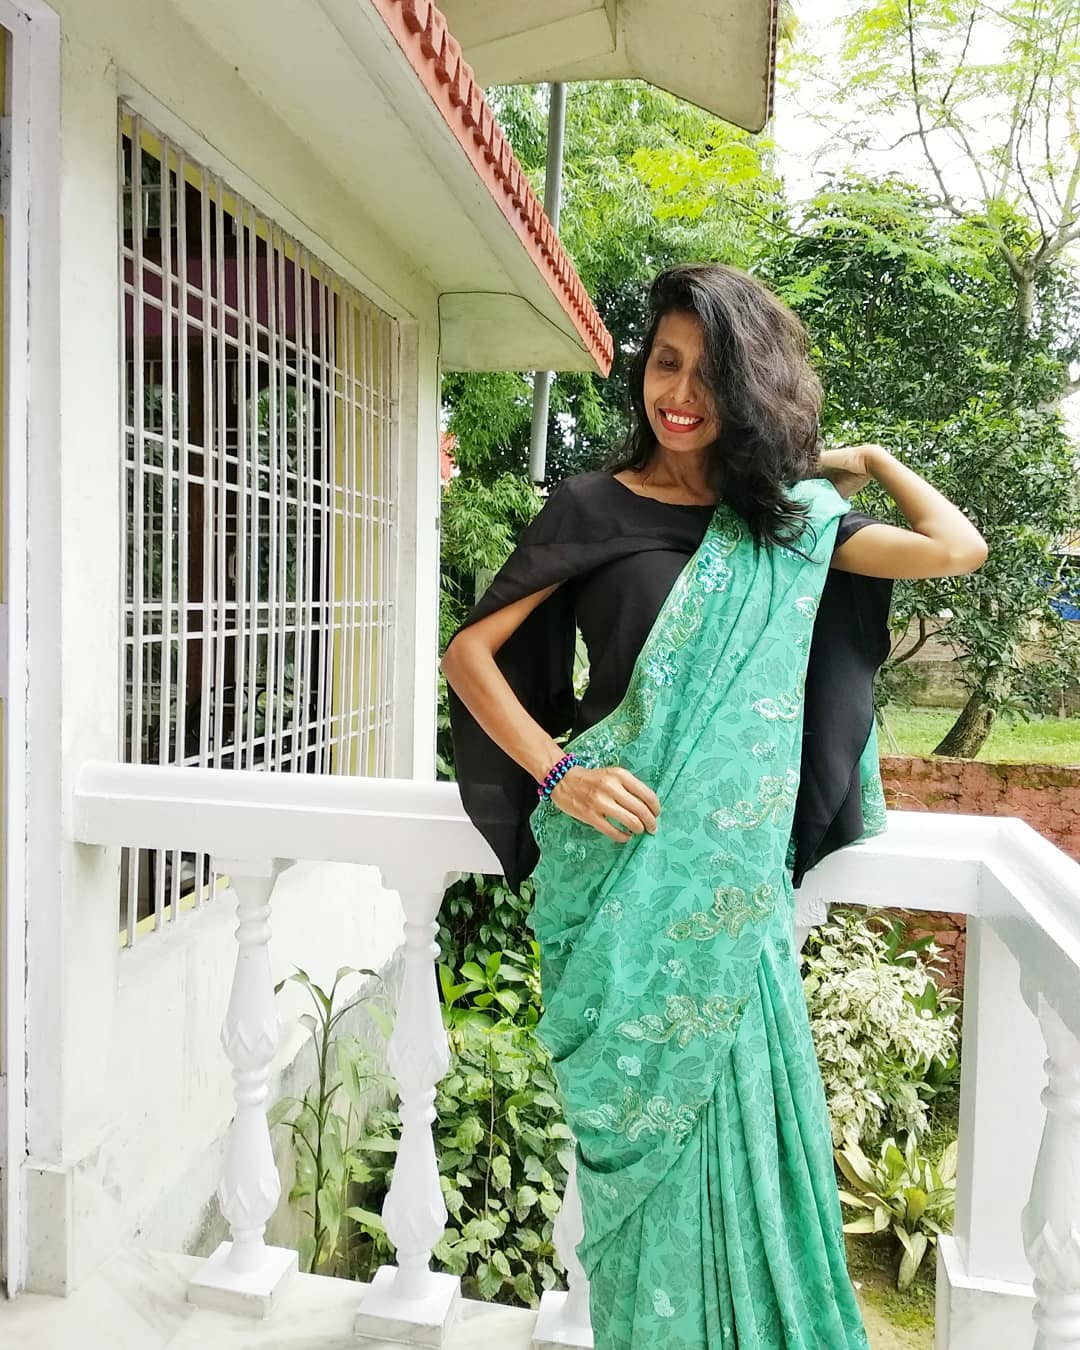 Saree fashion image